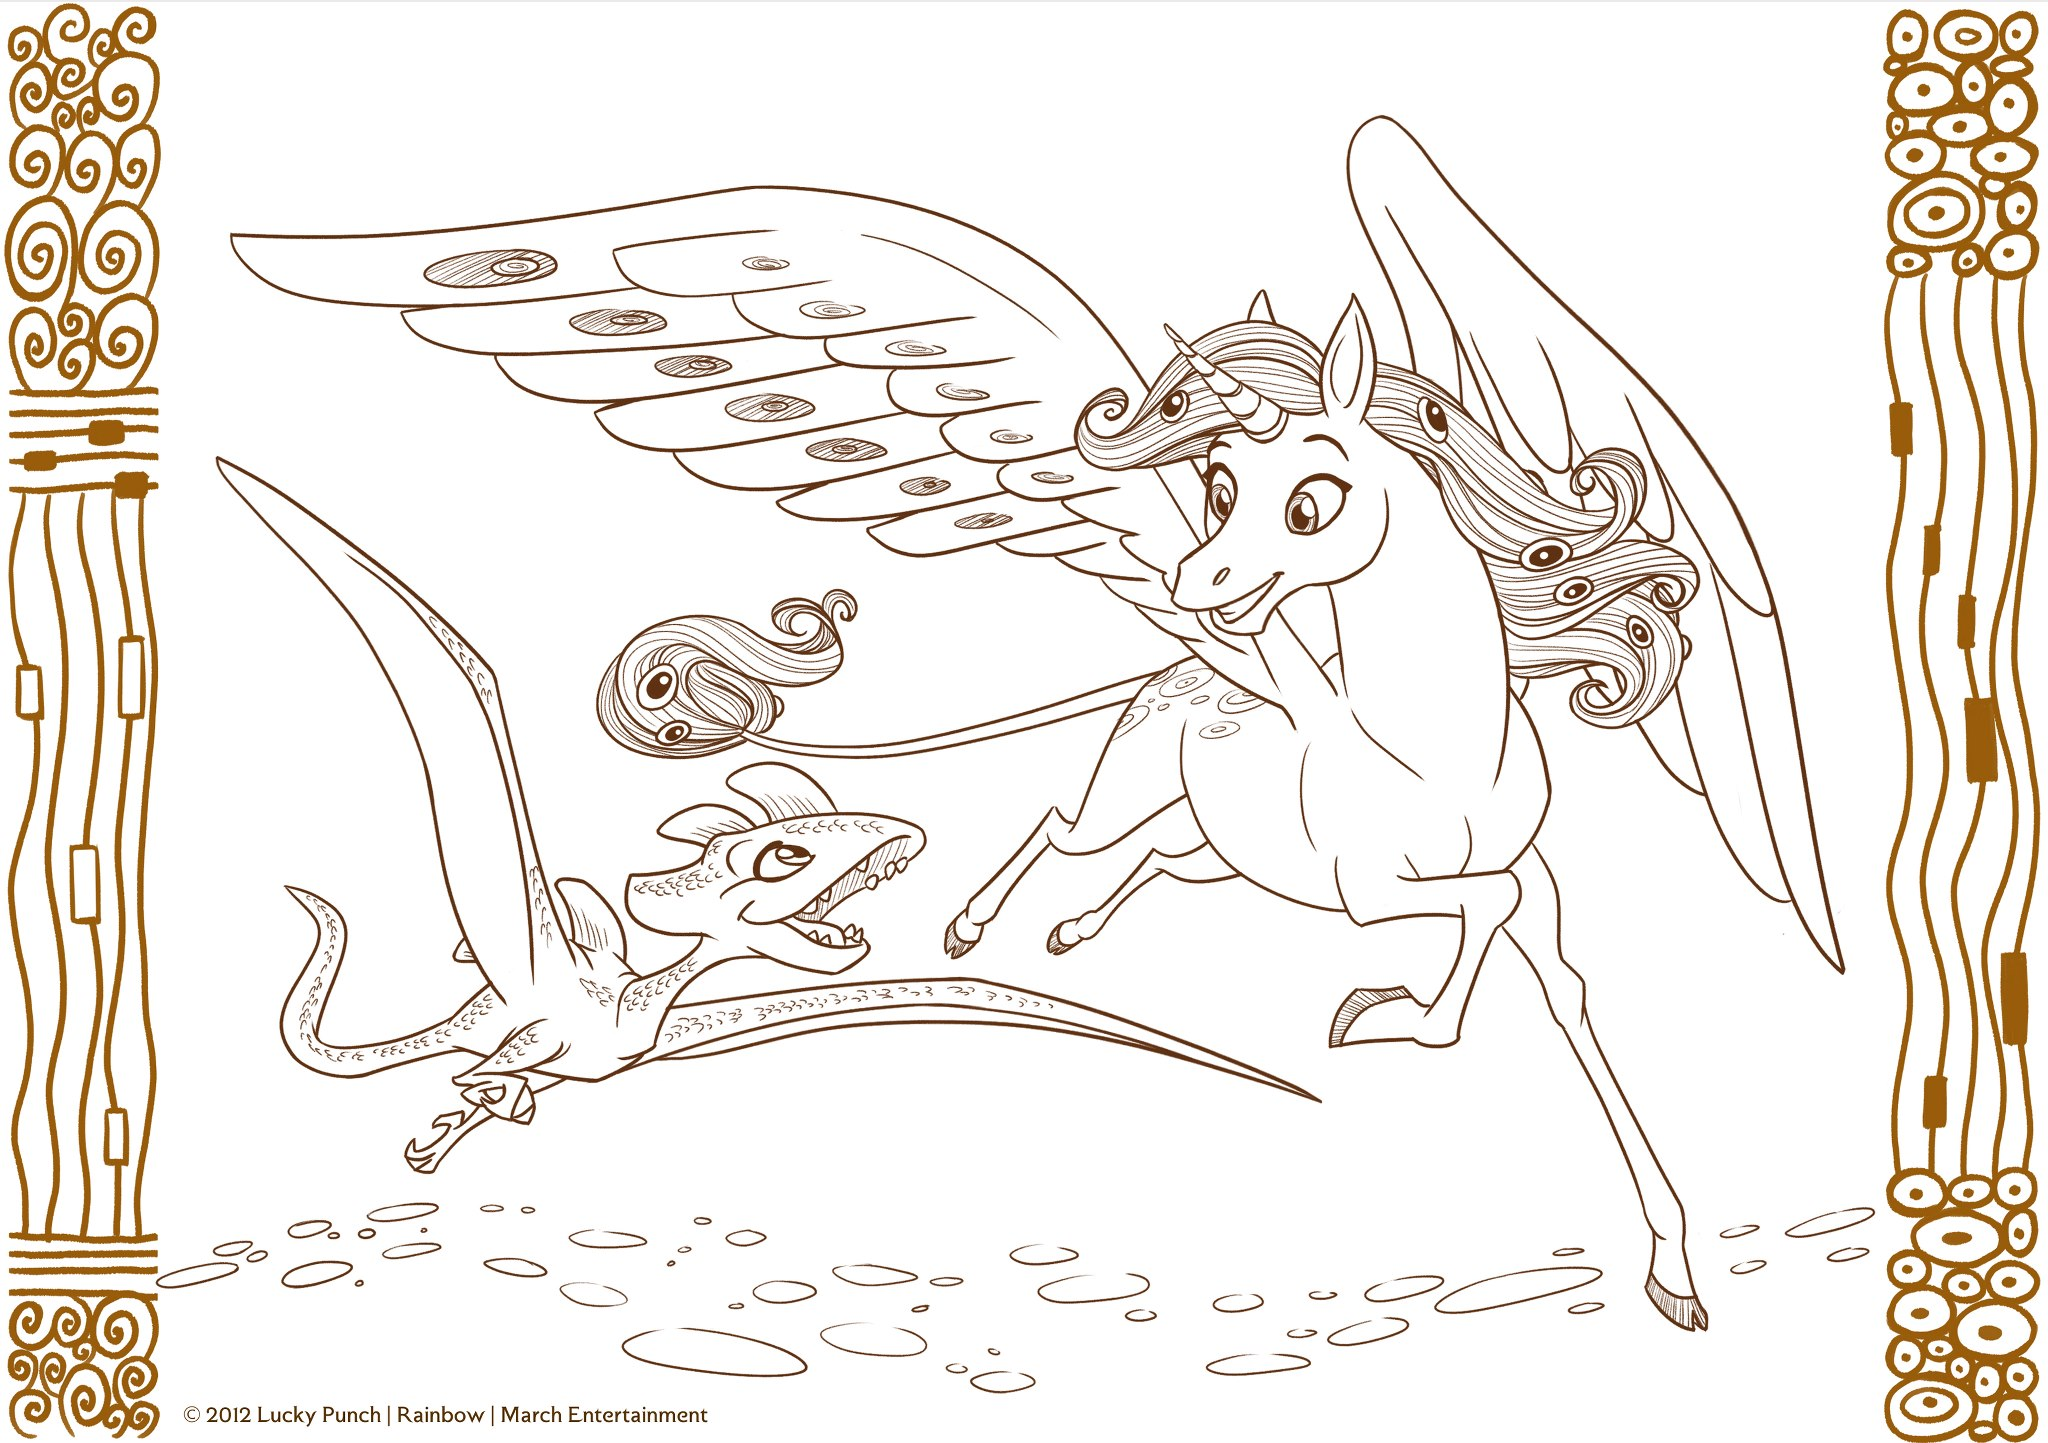 Mia and me unicorn coloring pages - Mia_and_me_bookpage_onchao_and_blues_by_stell_e D5mfes4 Jpg 2048 1443 Mia Me Pinterest